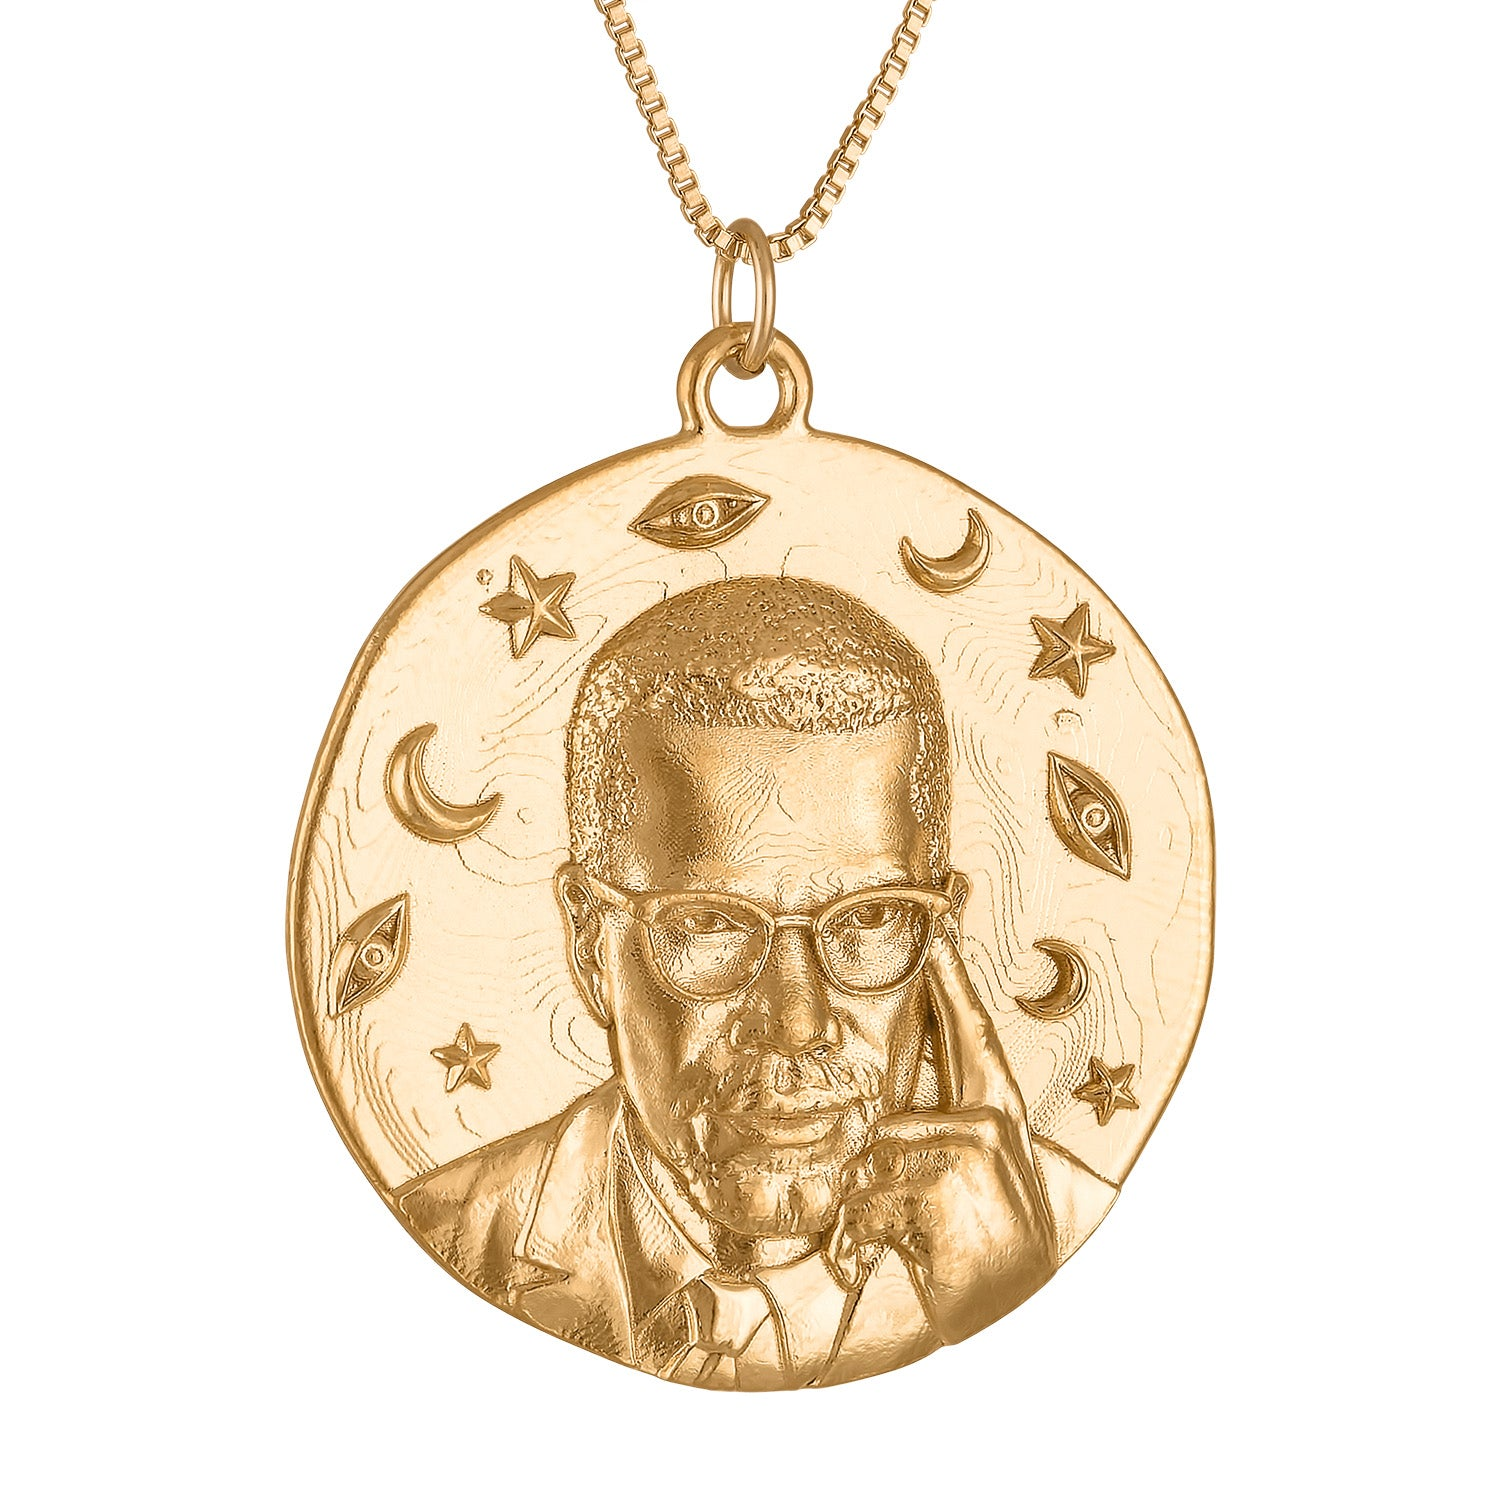 Malcolm X Large Medallion Necklace